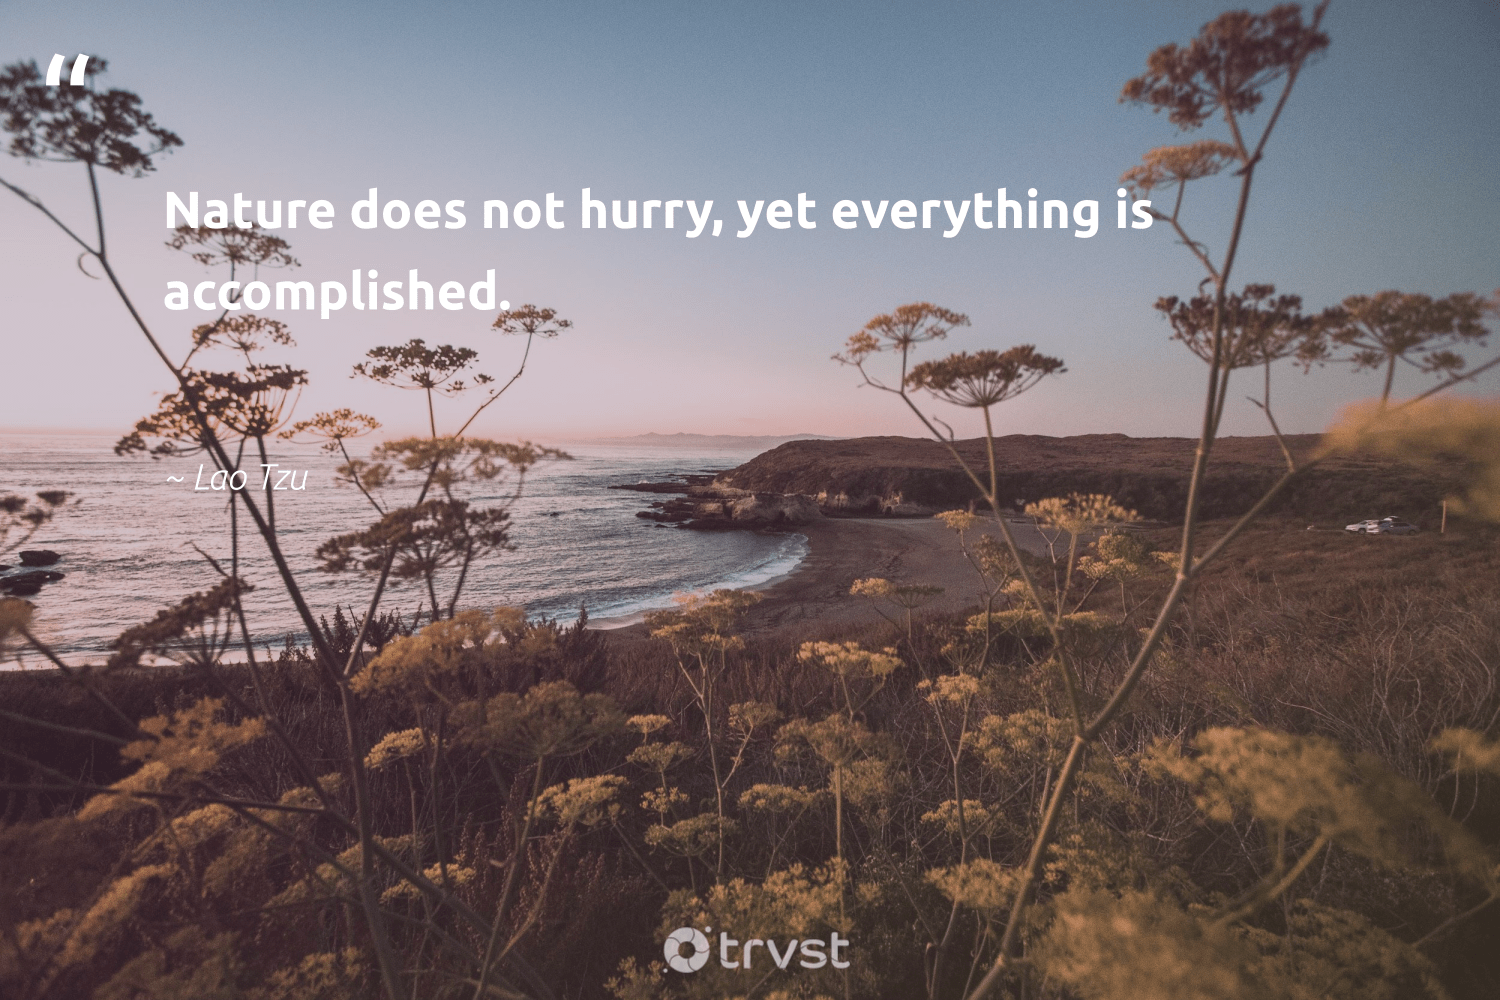 """""""Nature does not hurry, yet everything is accomplished.""""  - Lao Tzu #trvst #quotes #environment #nature #green #wildernessnation #takeaction #planet #noplanetb #gogreen #beinspired #mothernature"""